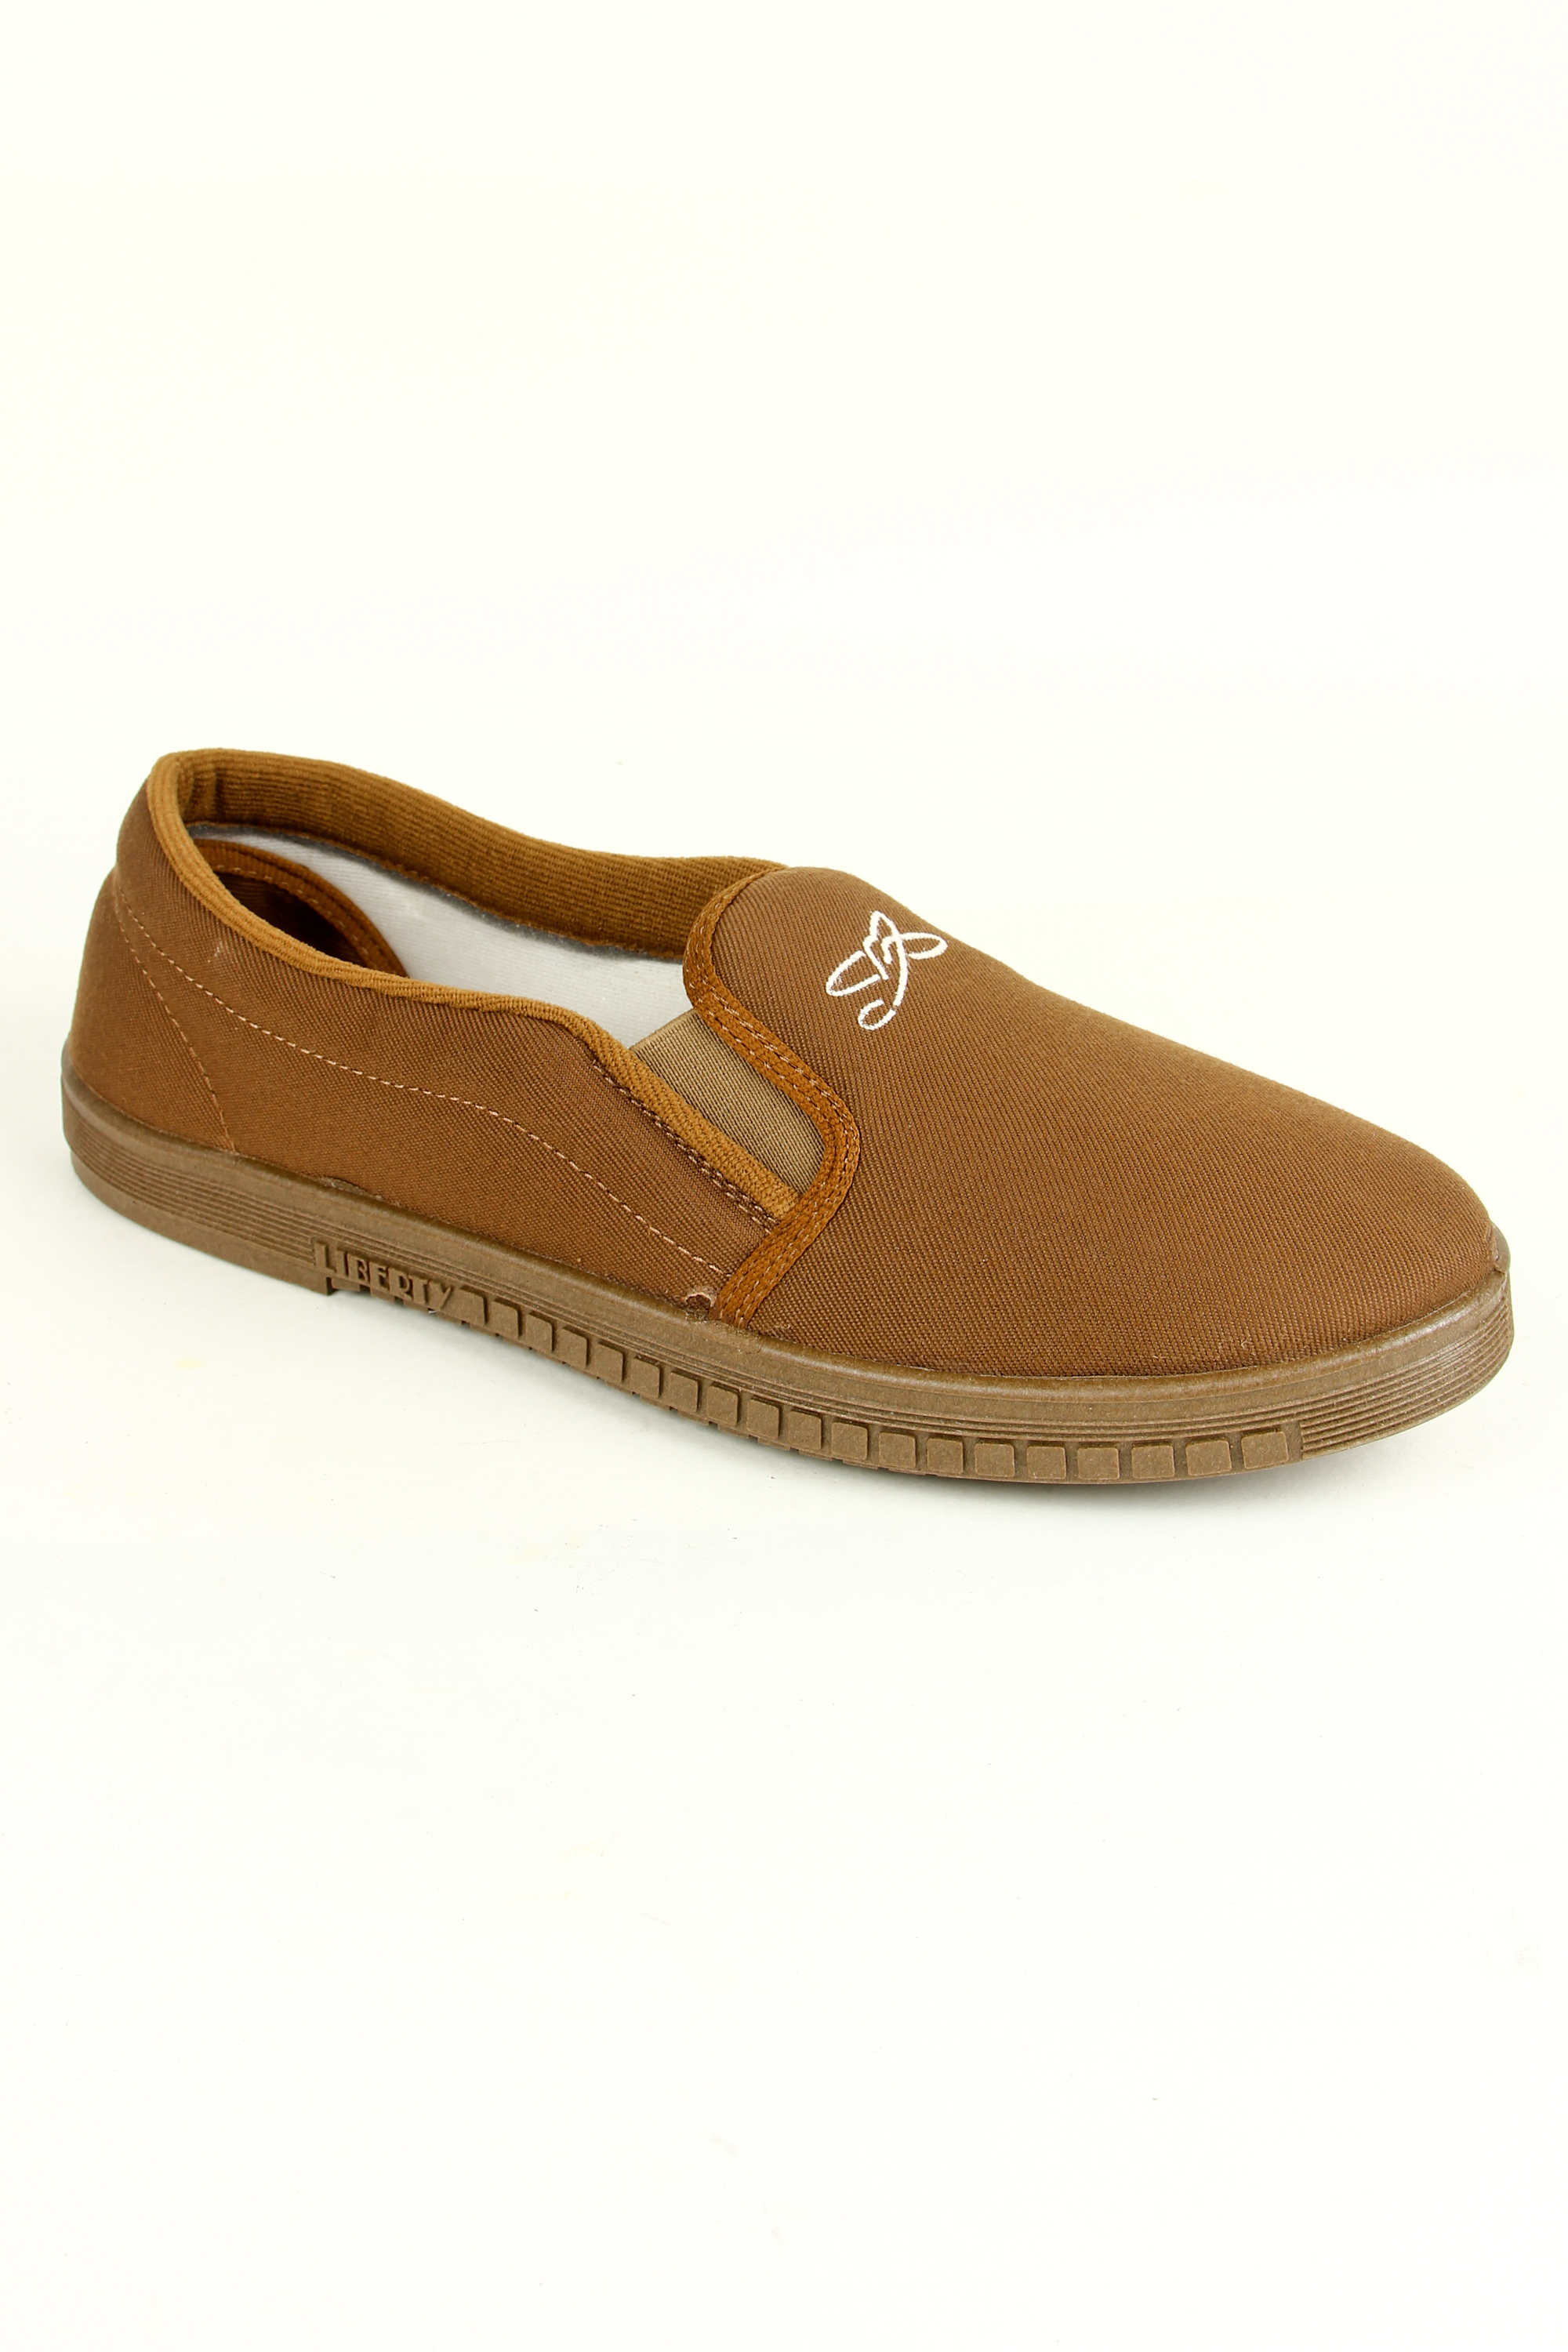 Liberty | Liberty GLIDERS Casual Slip-ons JOGGING-E_BEIGE For - Boys